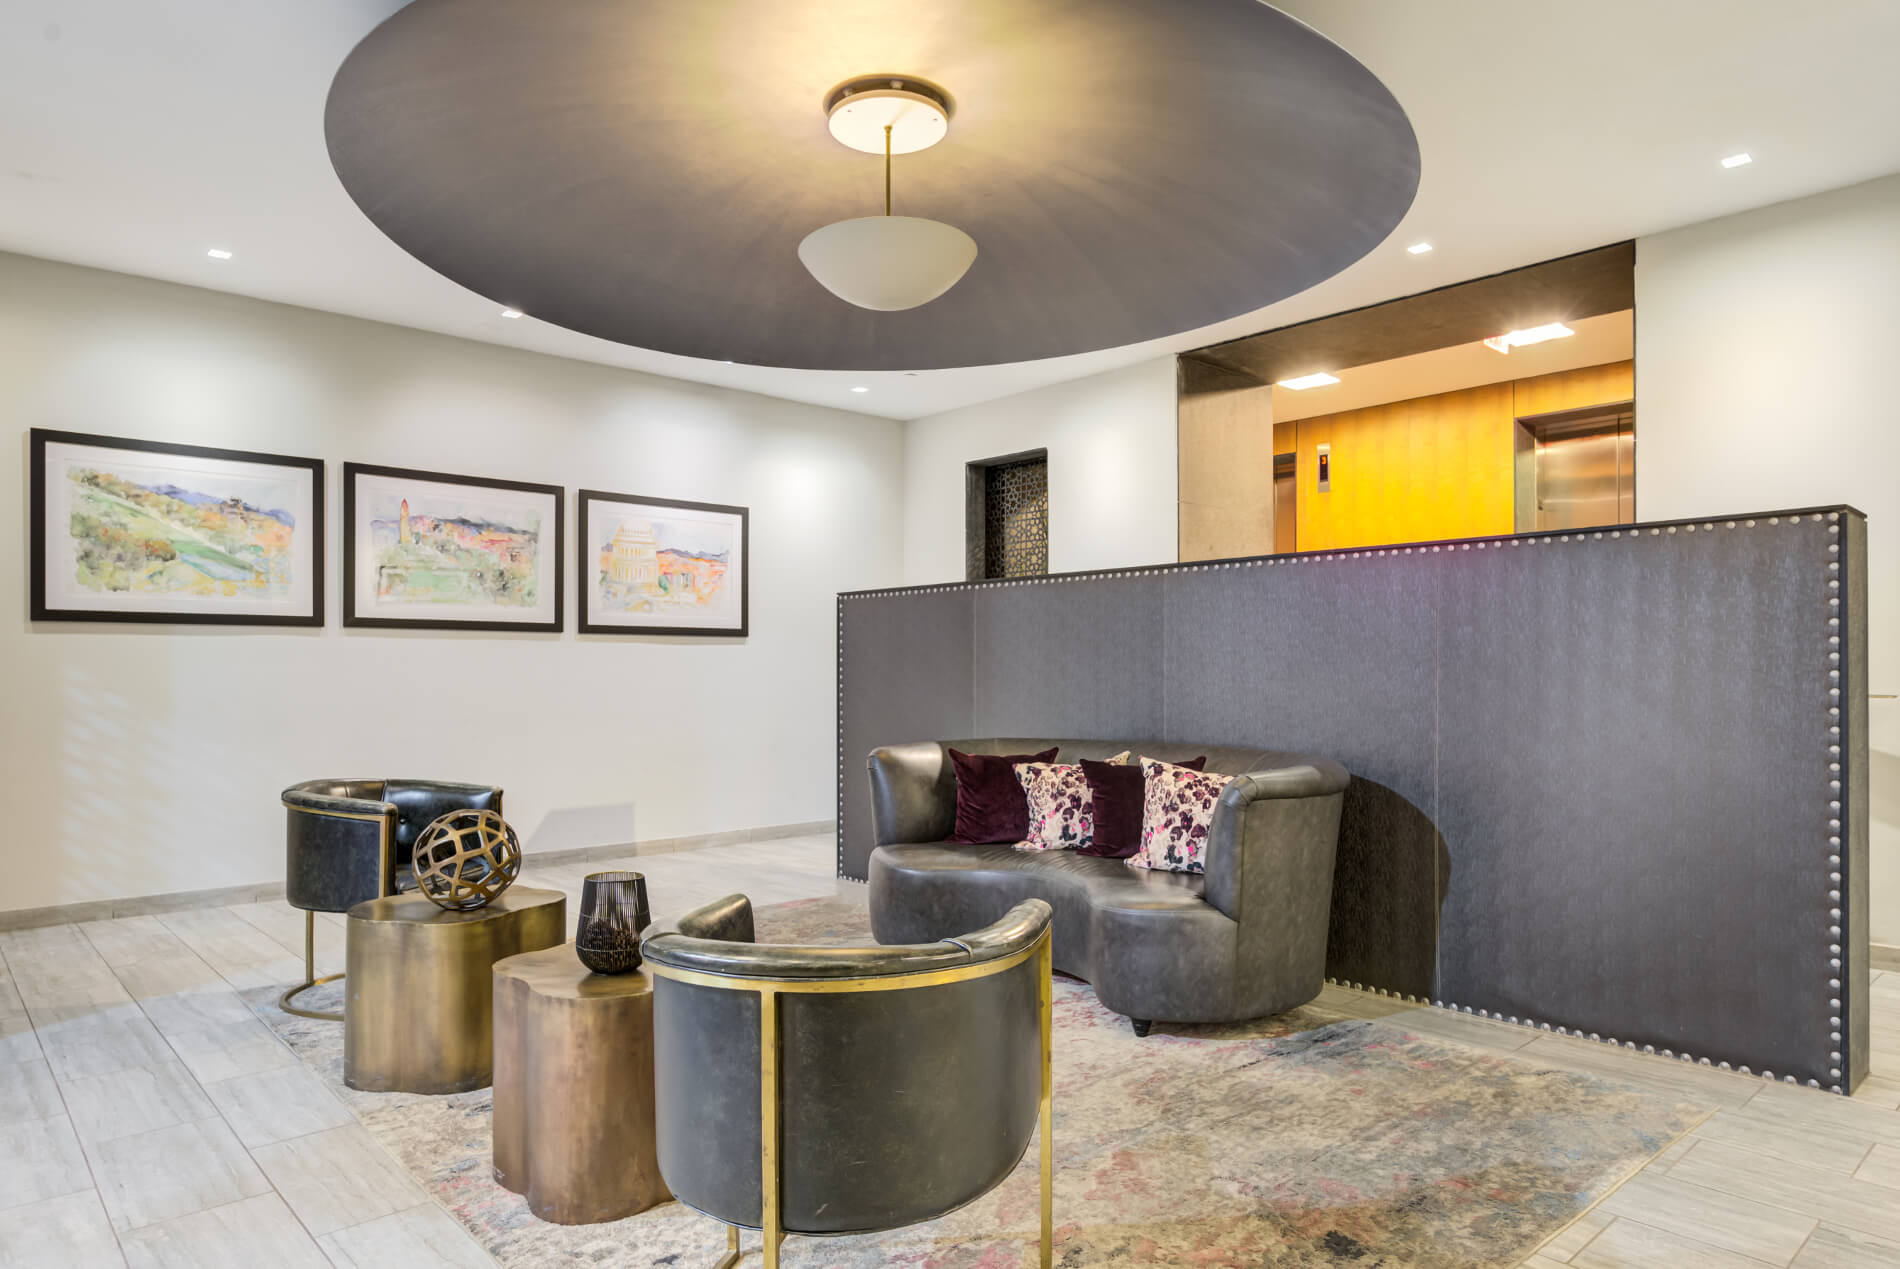 Lobby with furnishings in dramatic geometric and organic shapes